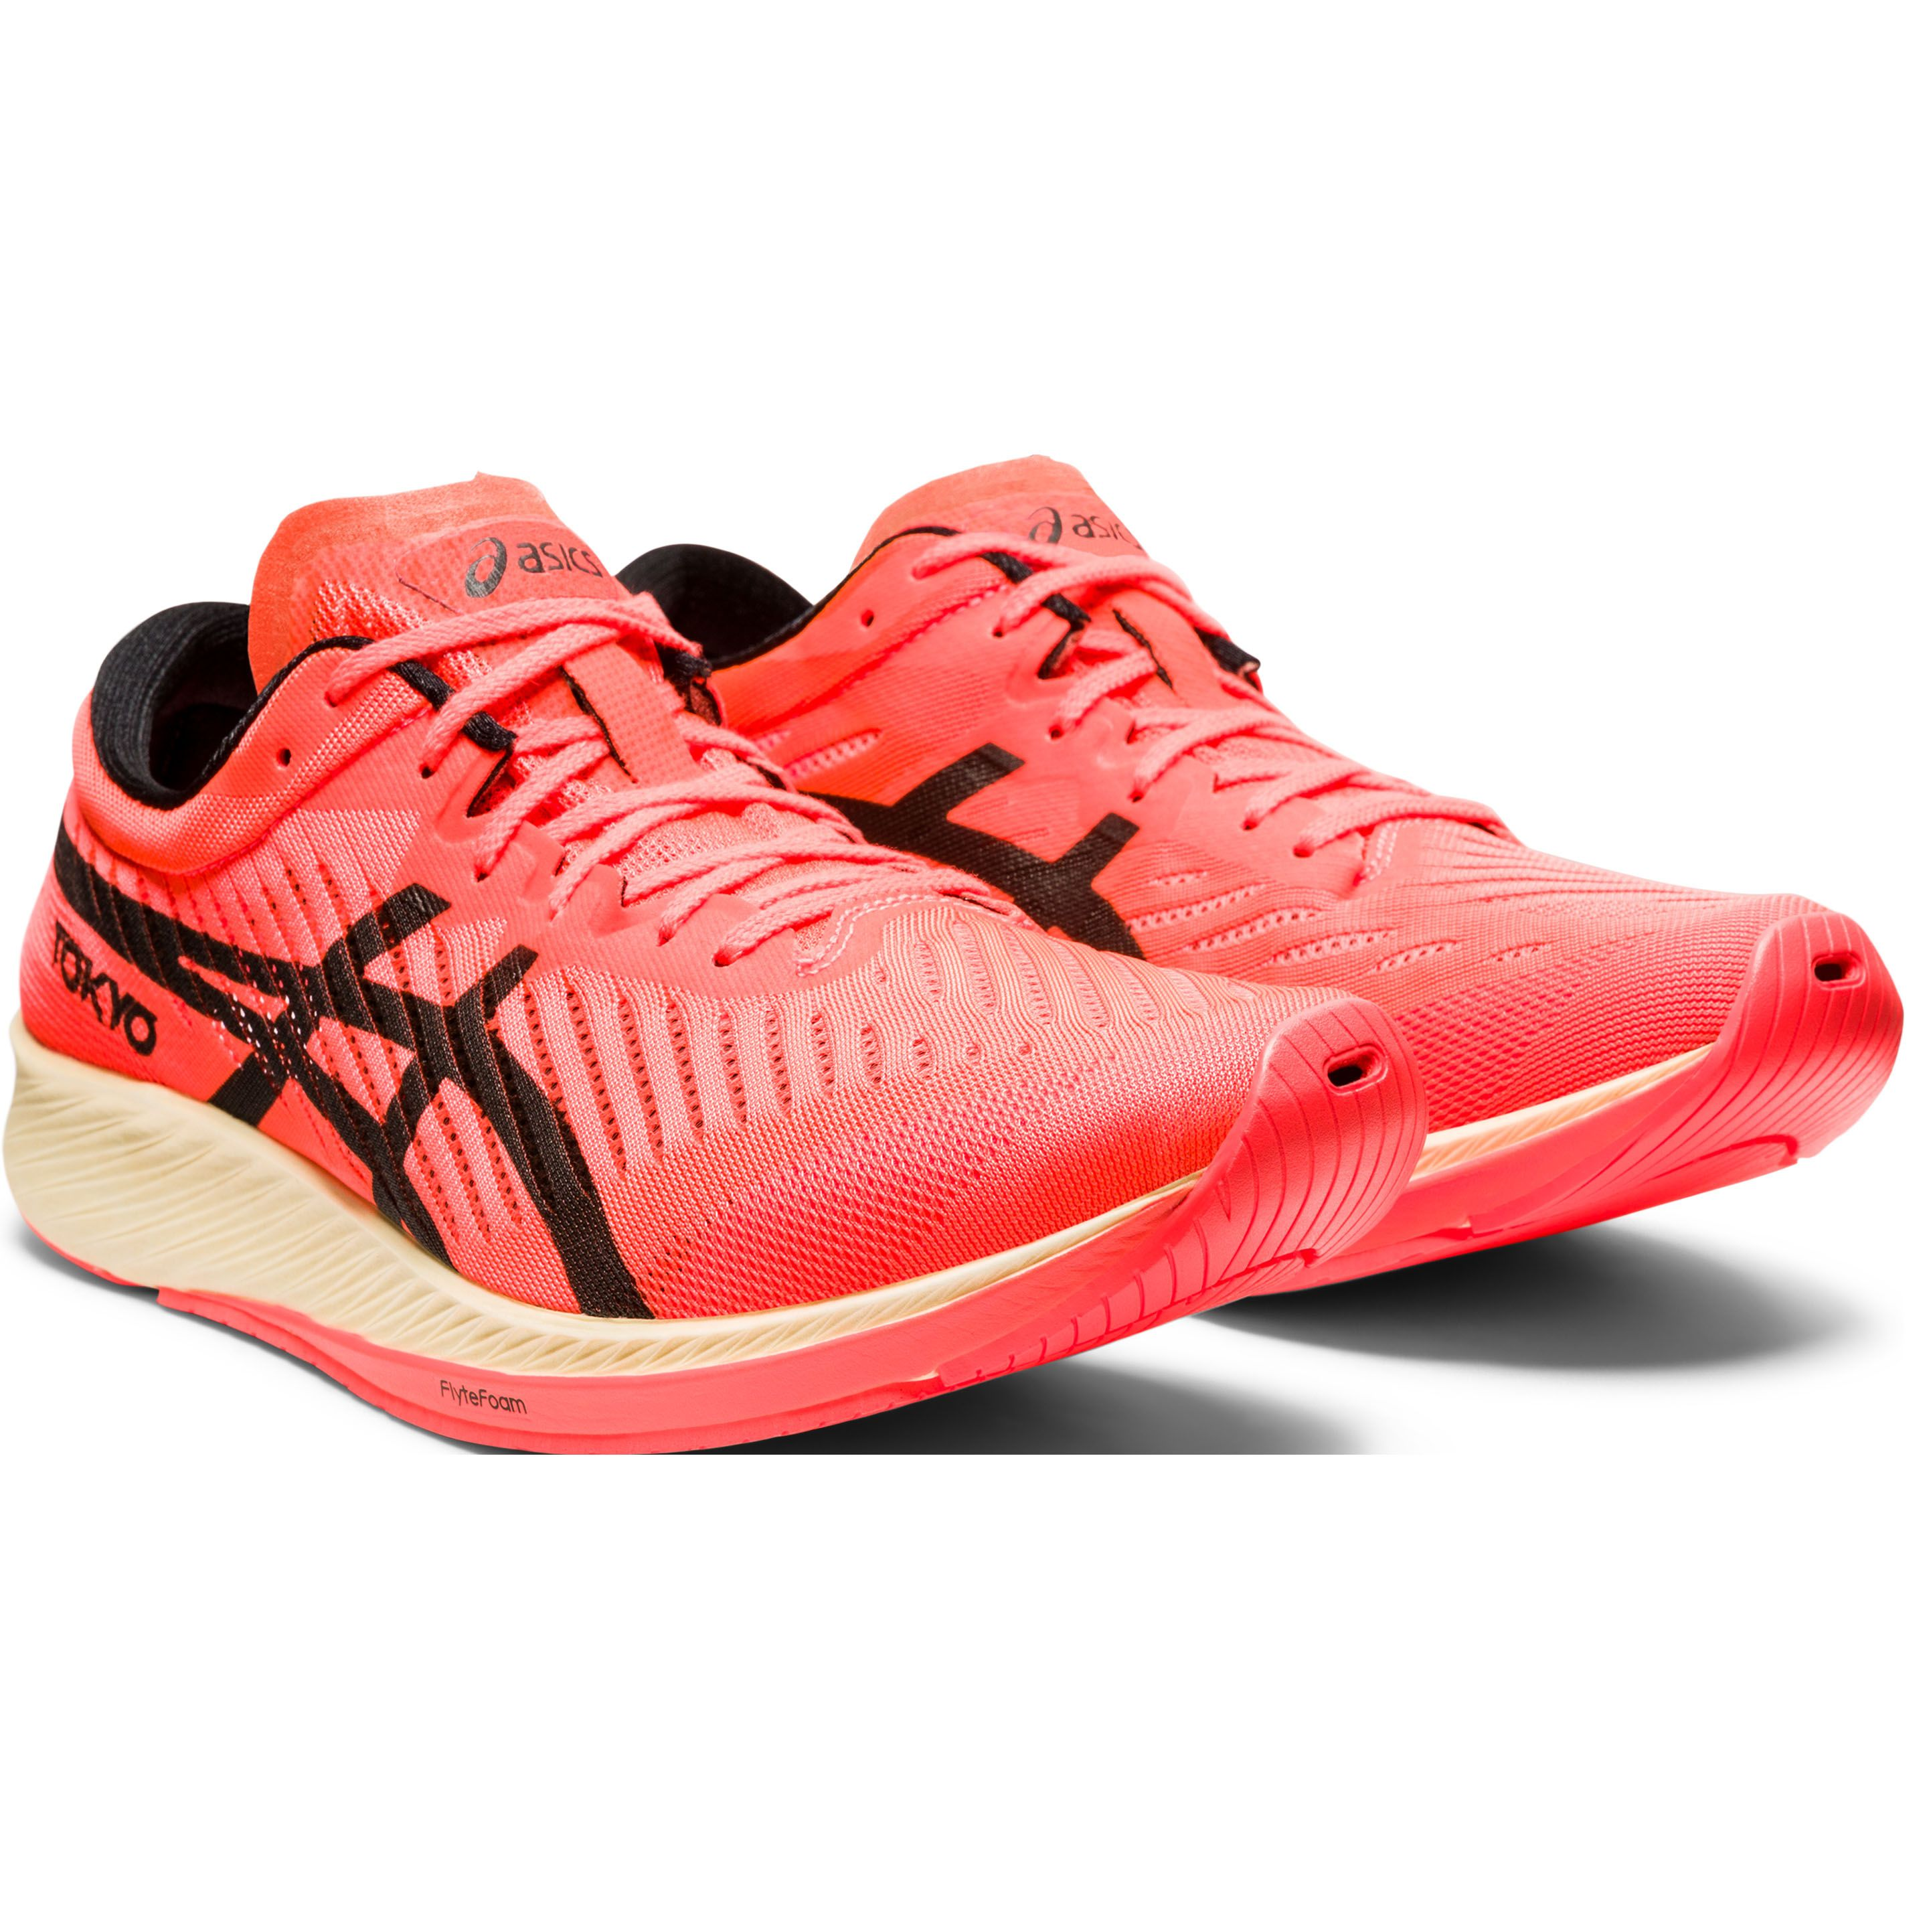 Asics announces the launch of two new